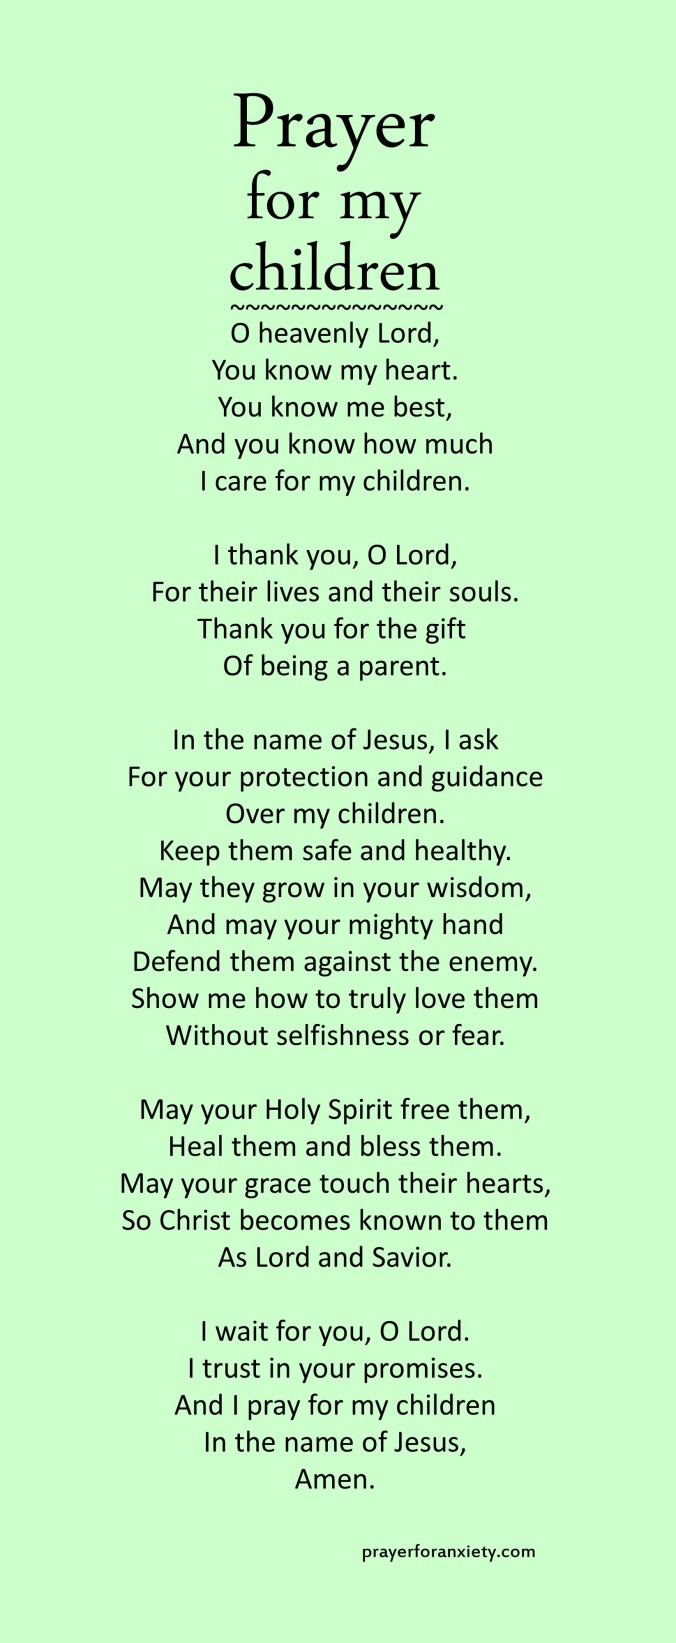 Prayer for my children